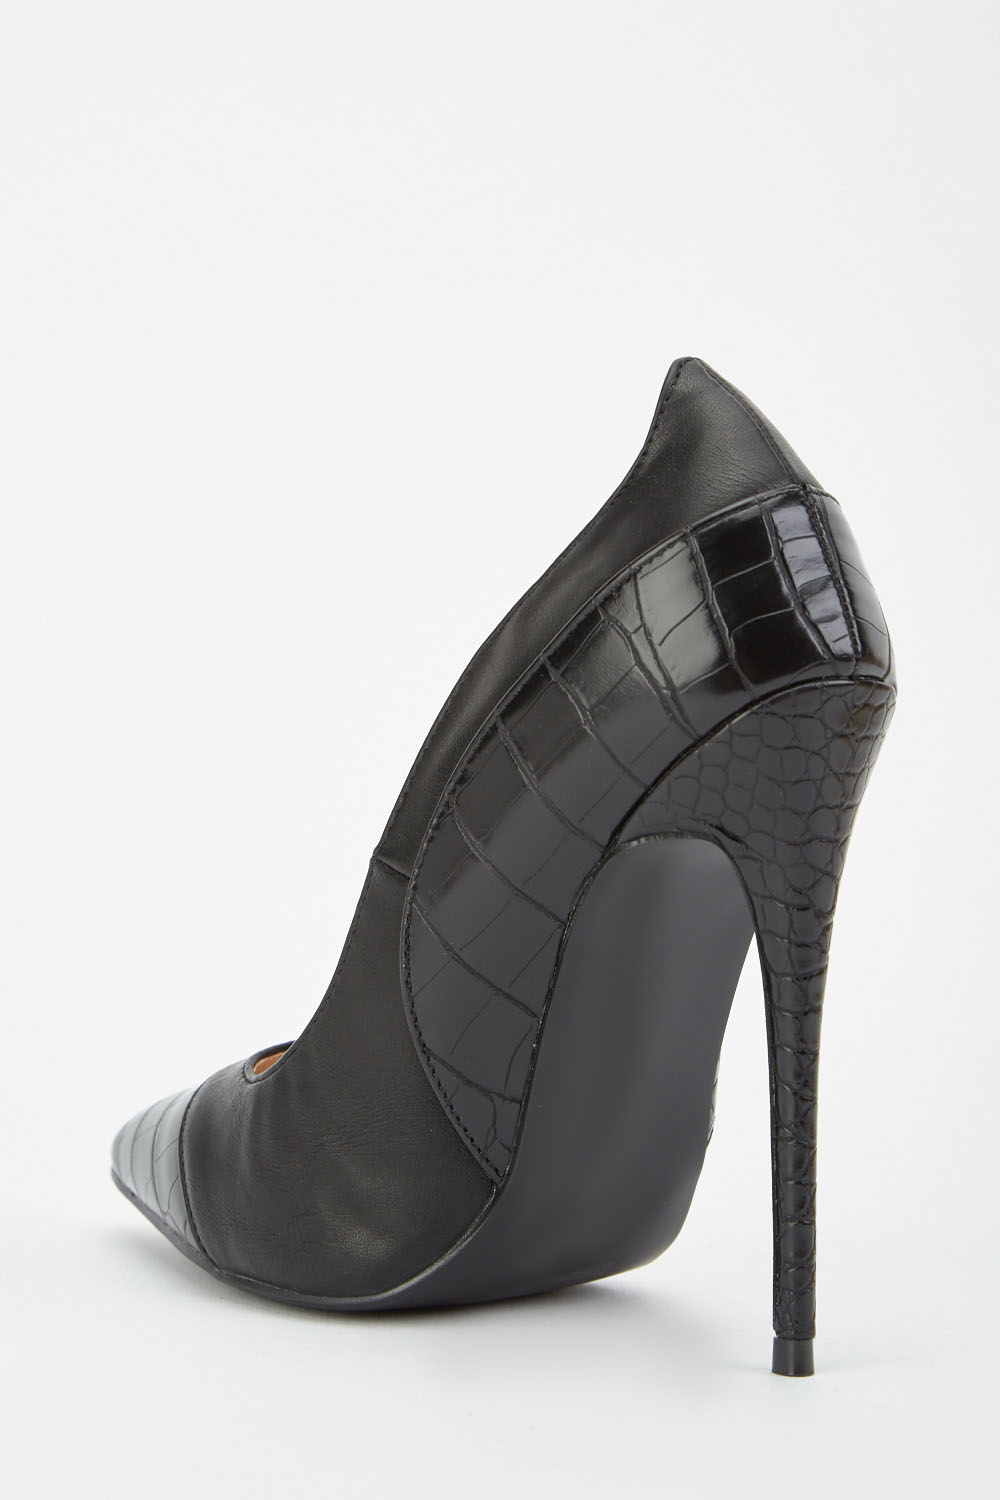 58c2ab06b LOST INK Charly Texture Mix High Heel Court Shoe - Black - Just £5